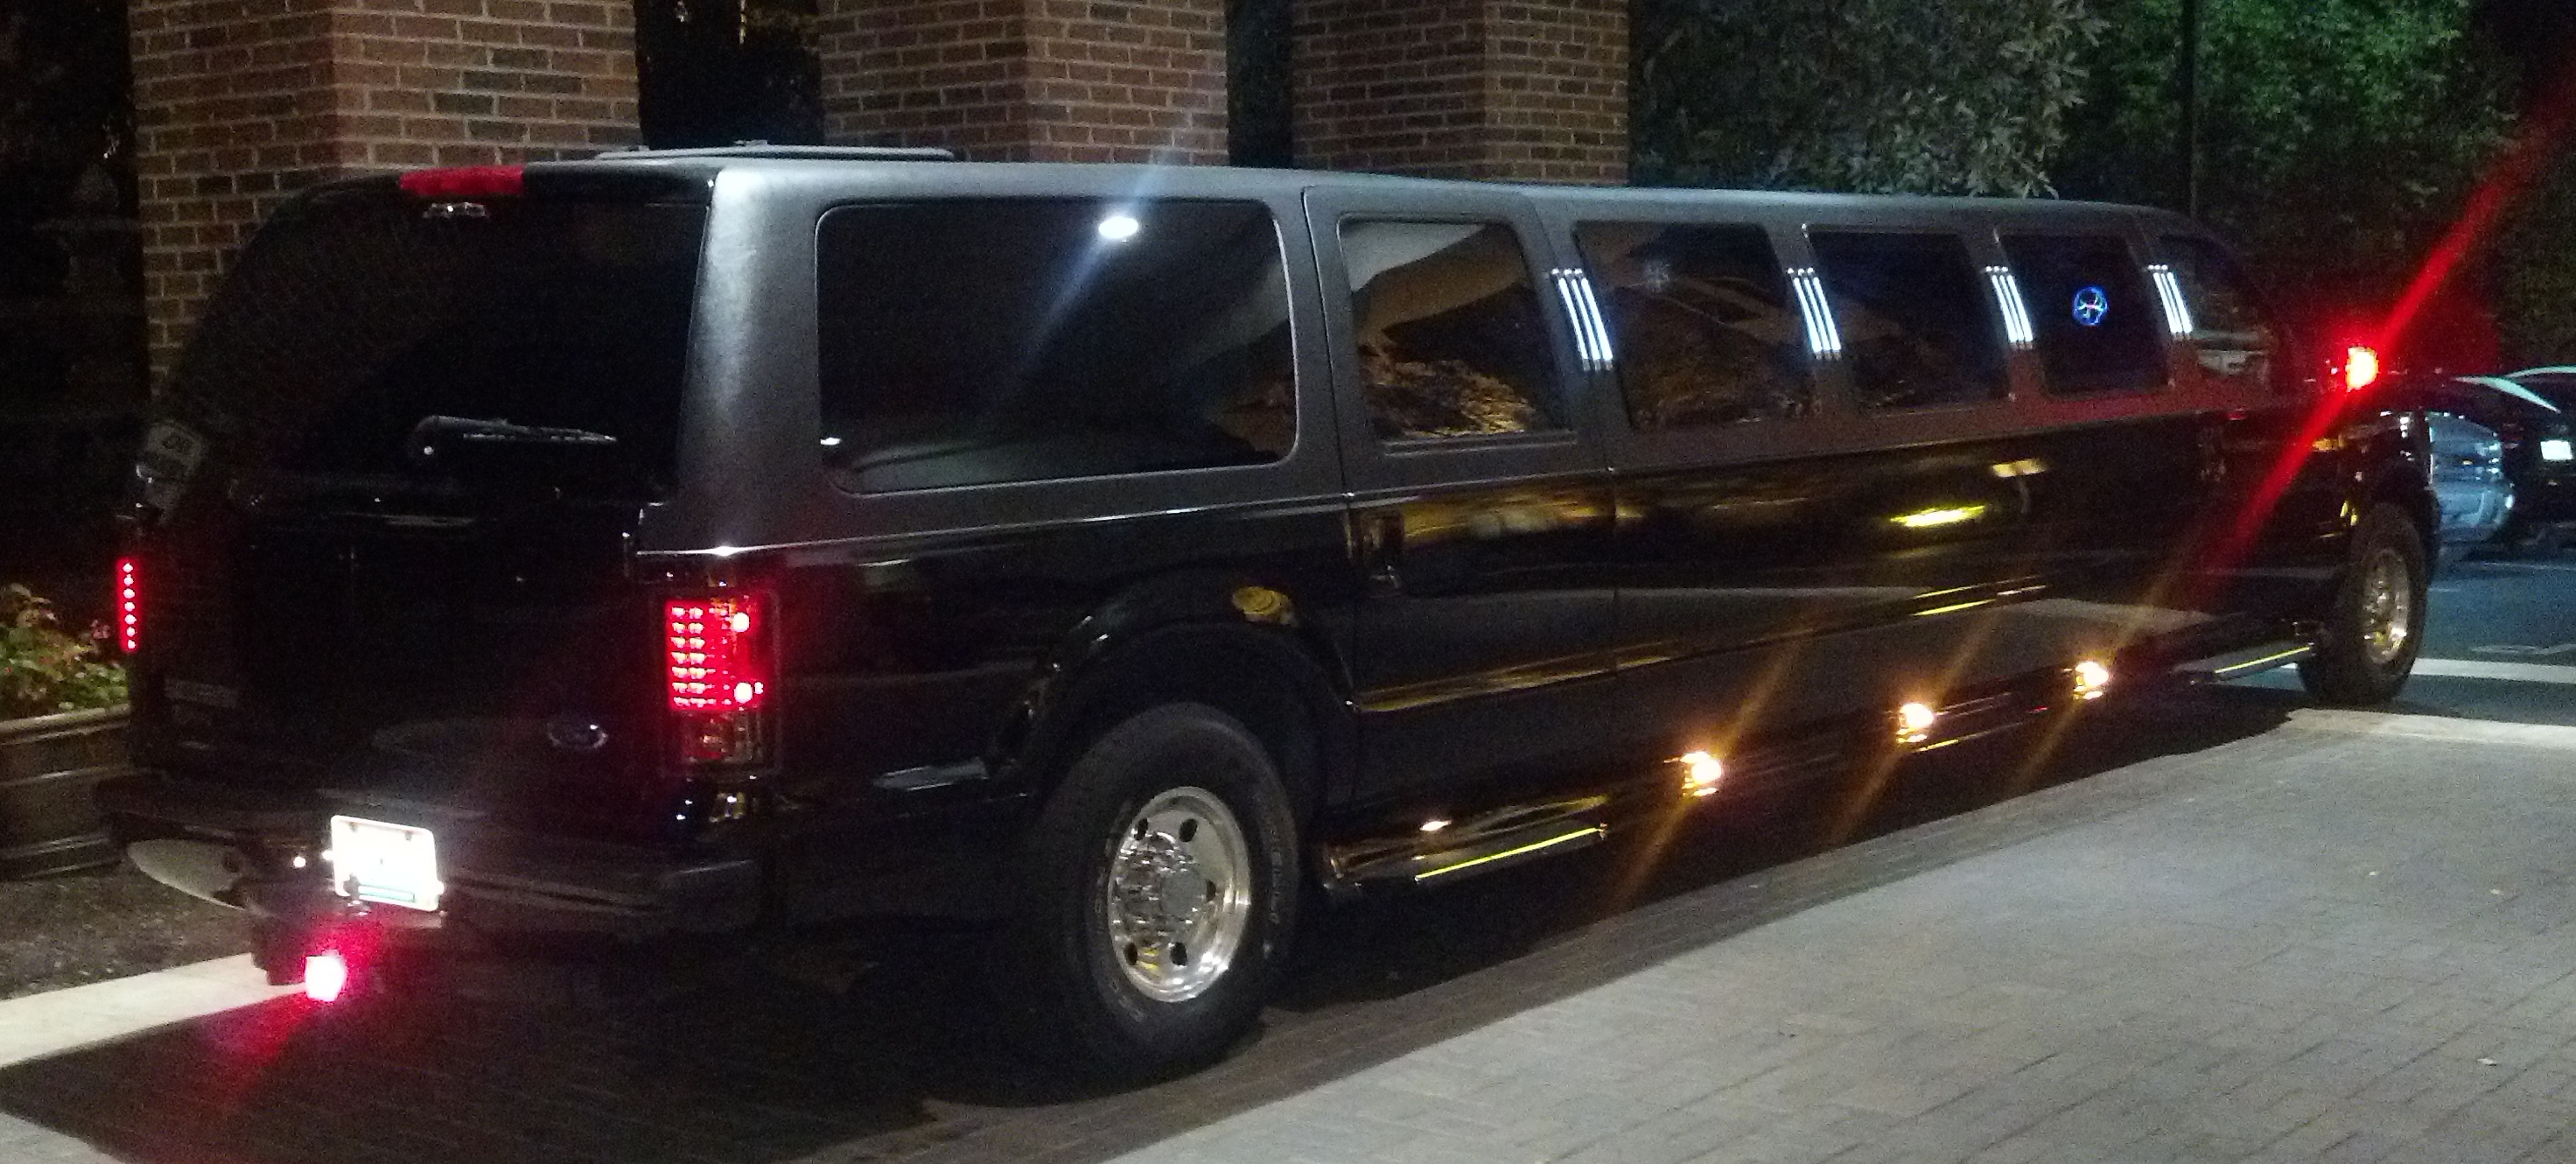 Excursion Exterior at Night